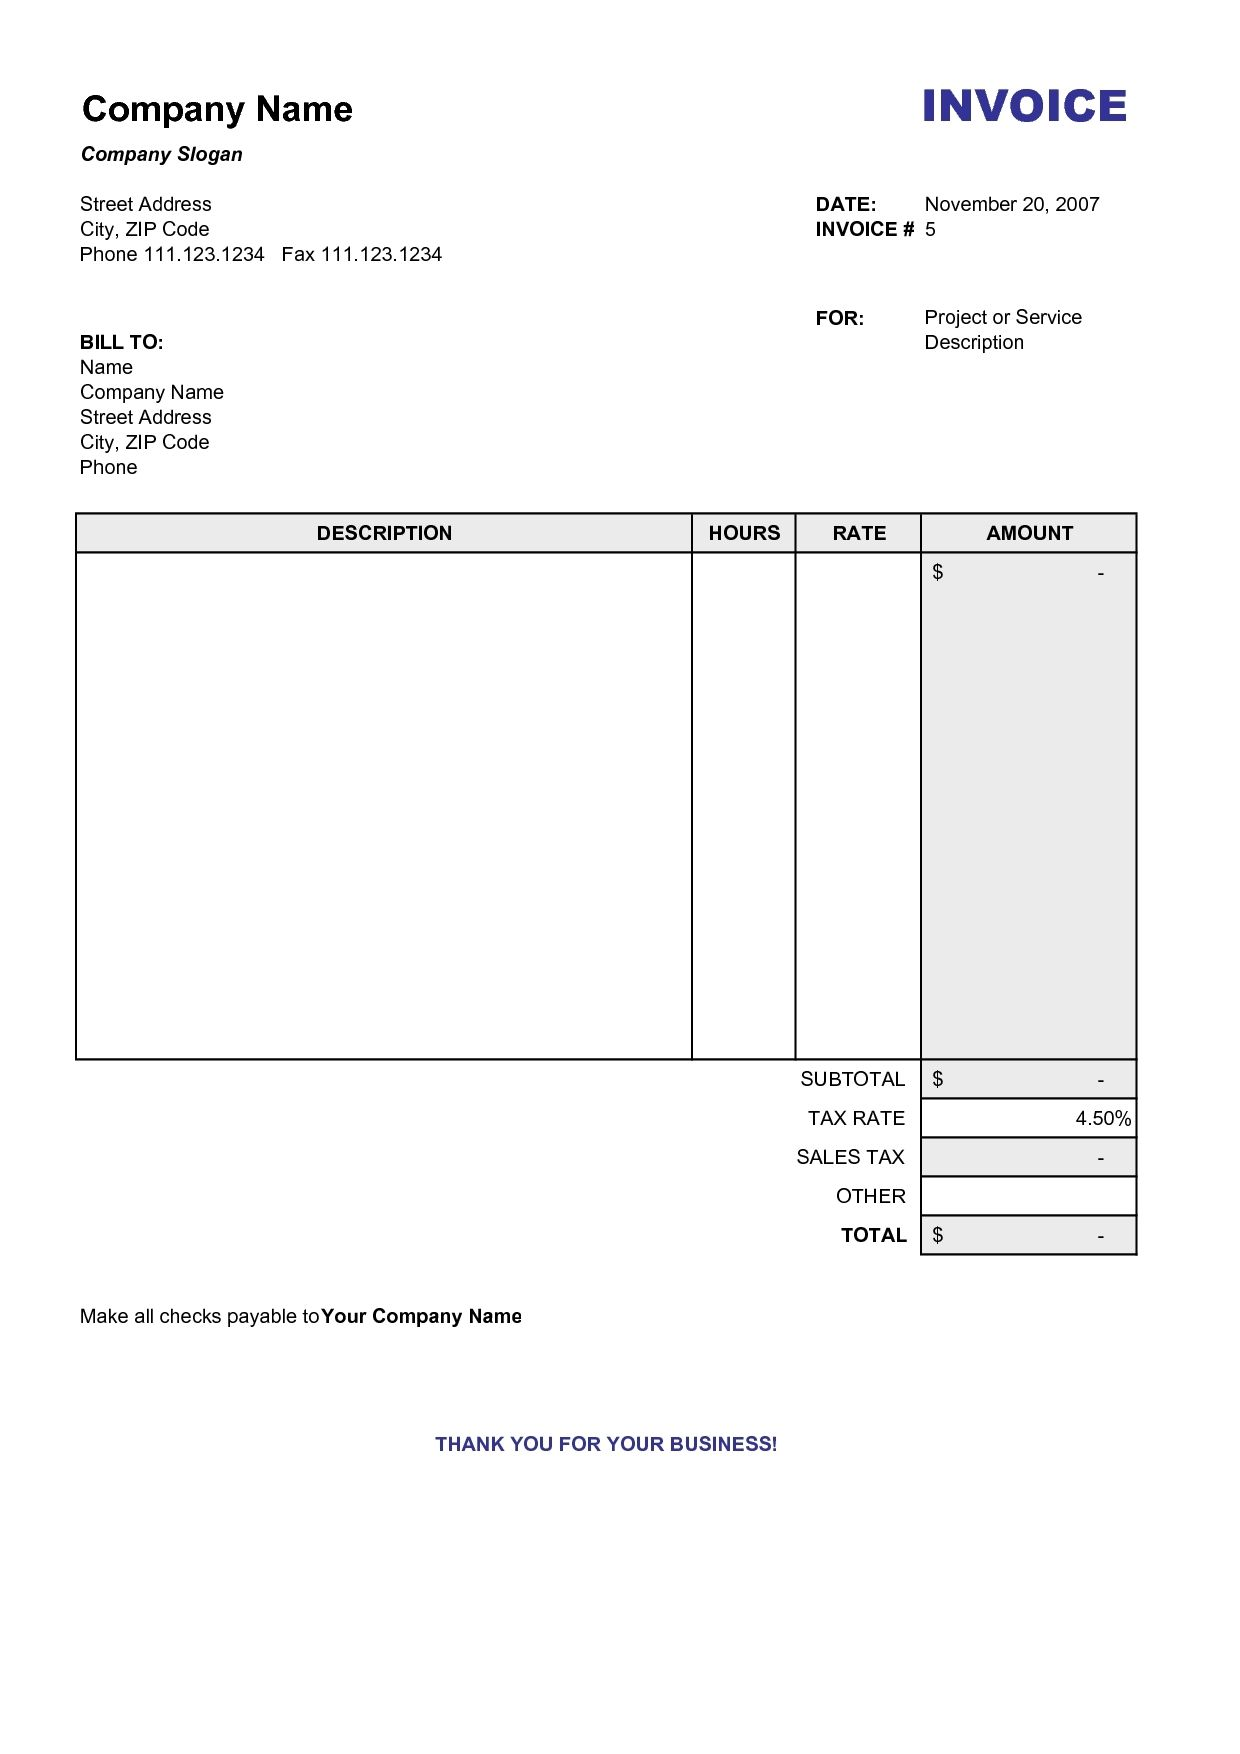 copy of a blank invoice invoice template free 2016 copy of blank – Copy of an Invoice Template